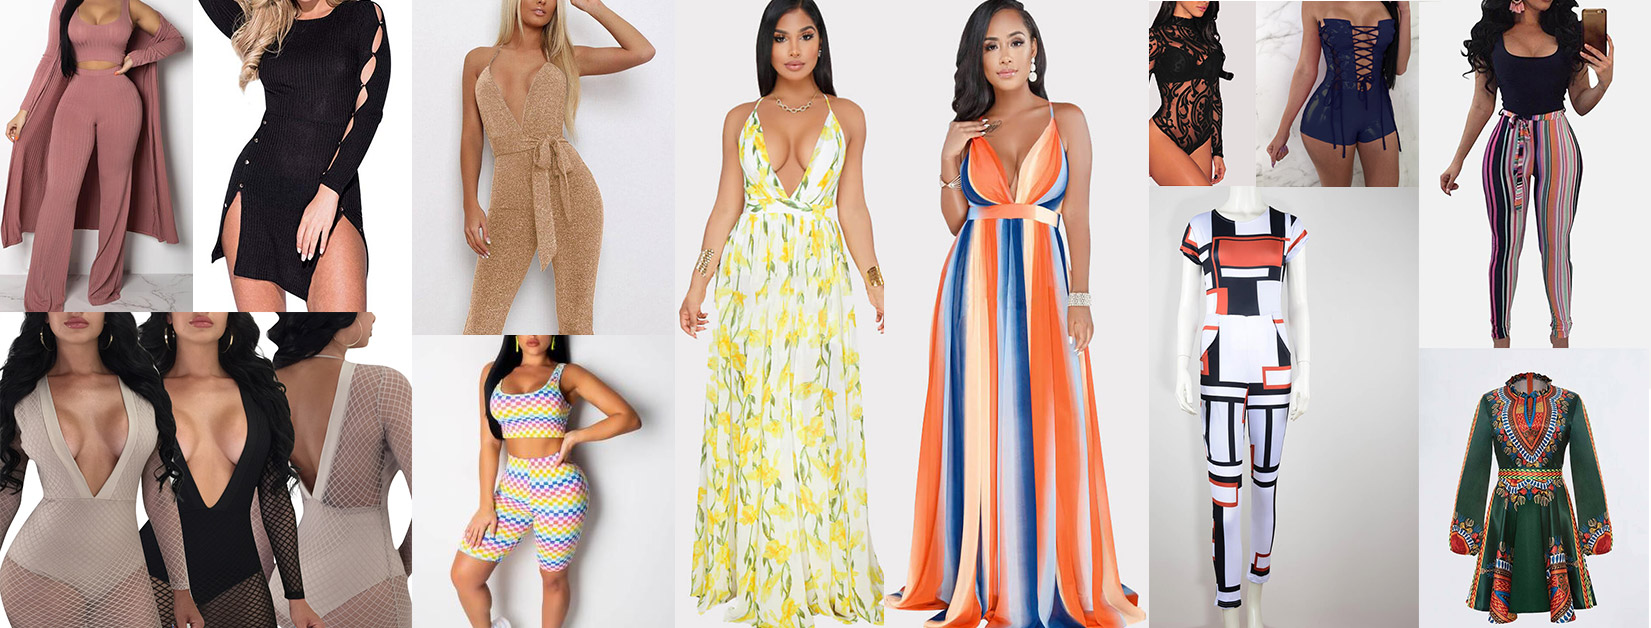 amazon-clearance-womens-fashion-clothes